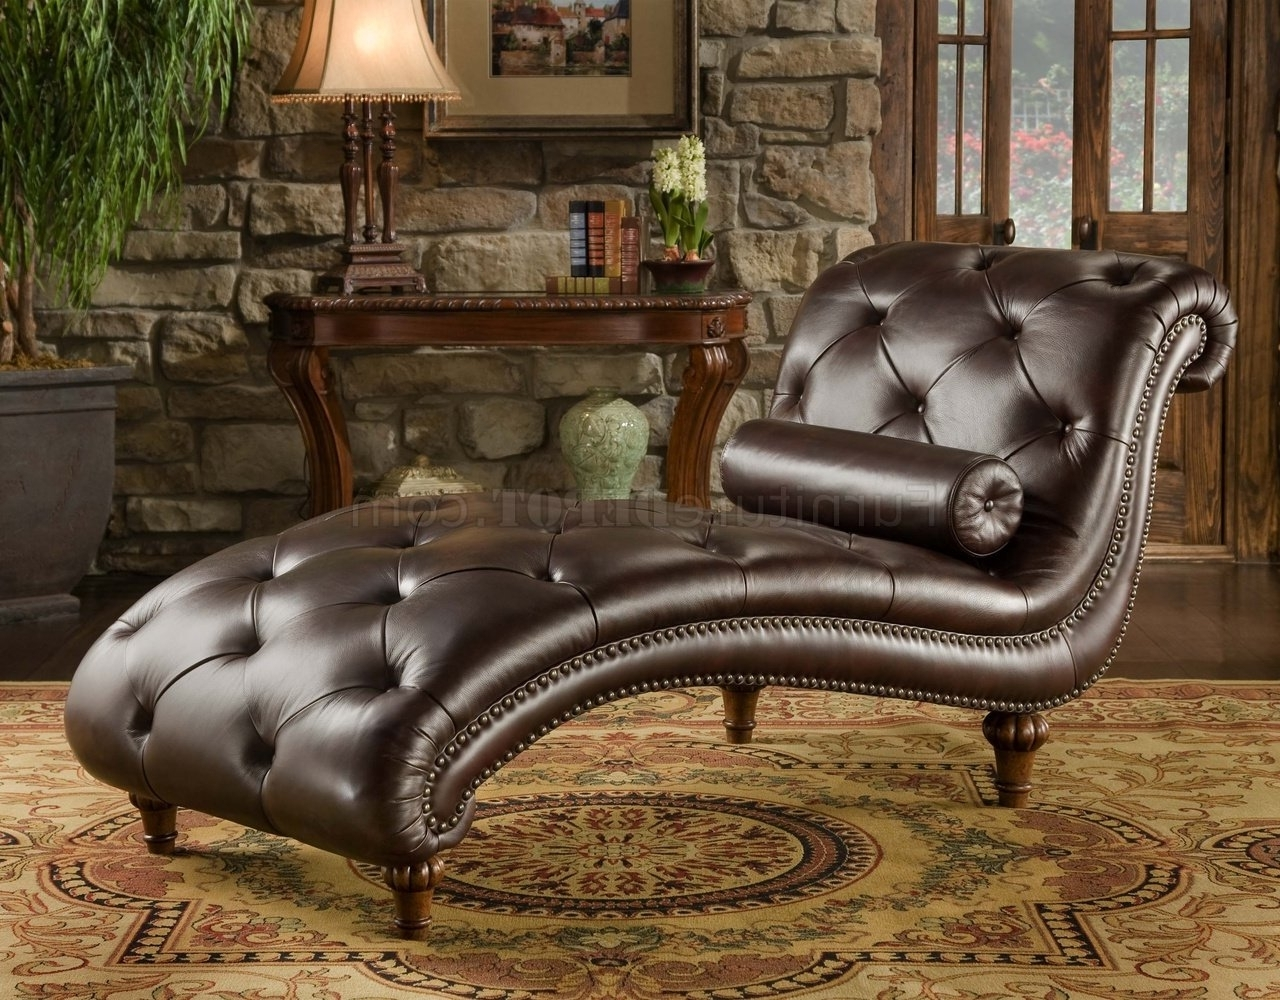 Tufted Leather Chaises In Well Known Rich Brown Top Grain Tufted Leather Traditional Chaise Lounge (View 9 of 15)